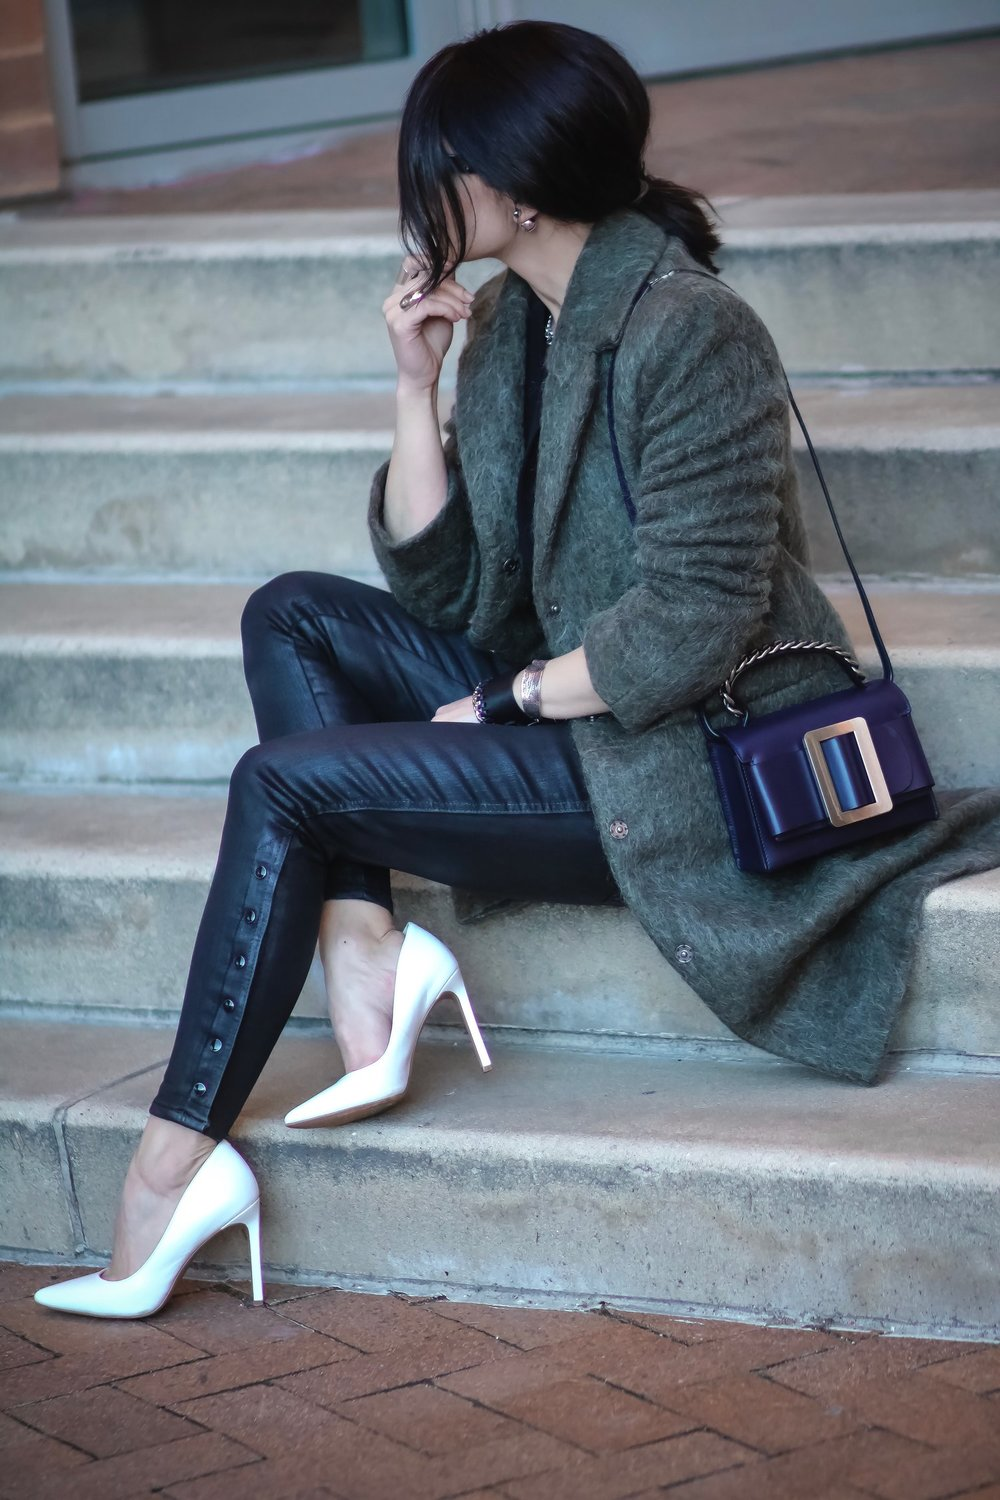 Isabel-Alexander-sitting-down-stairs-wearing-Asos-khaki-coat-boyy-buckle-bag